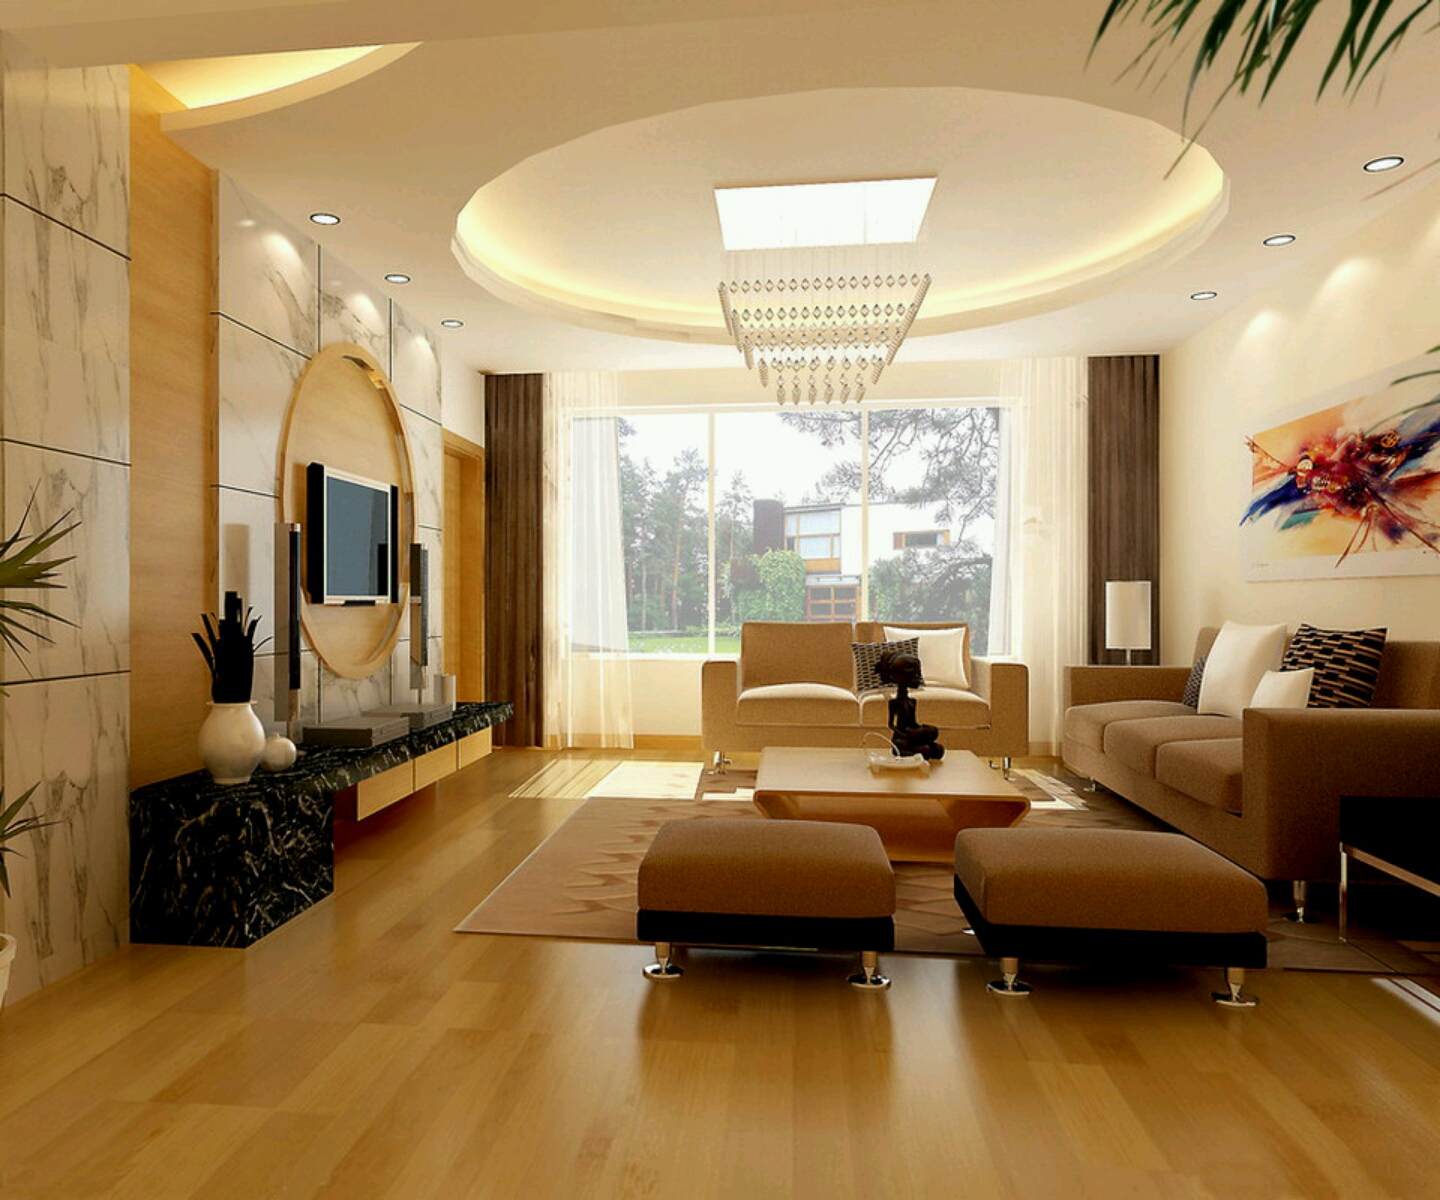 Modern interior decoration living rooms ceiling designs for Sitting room decor ideas